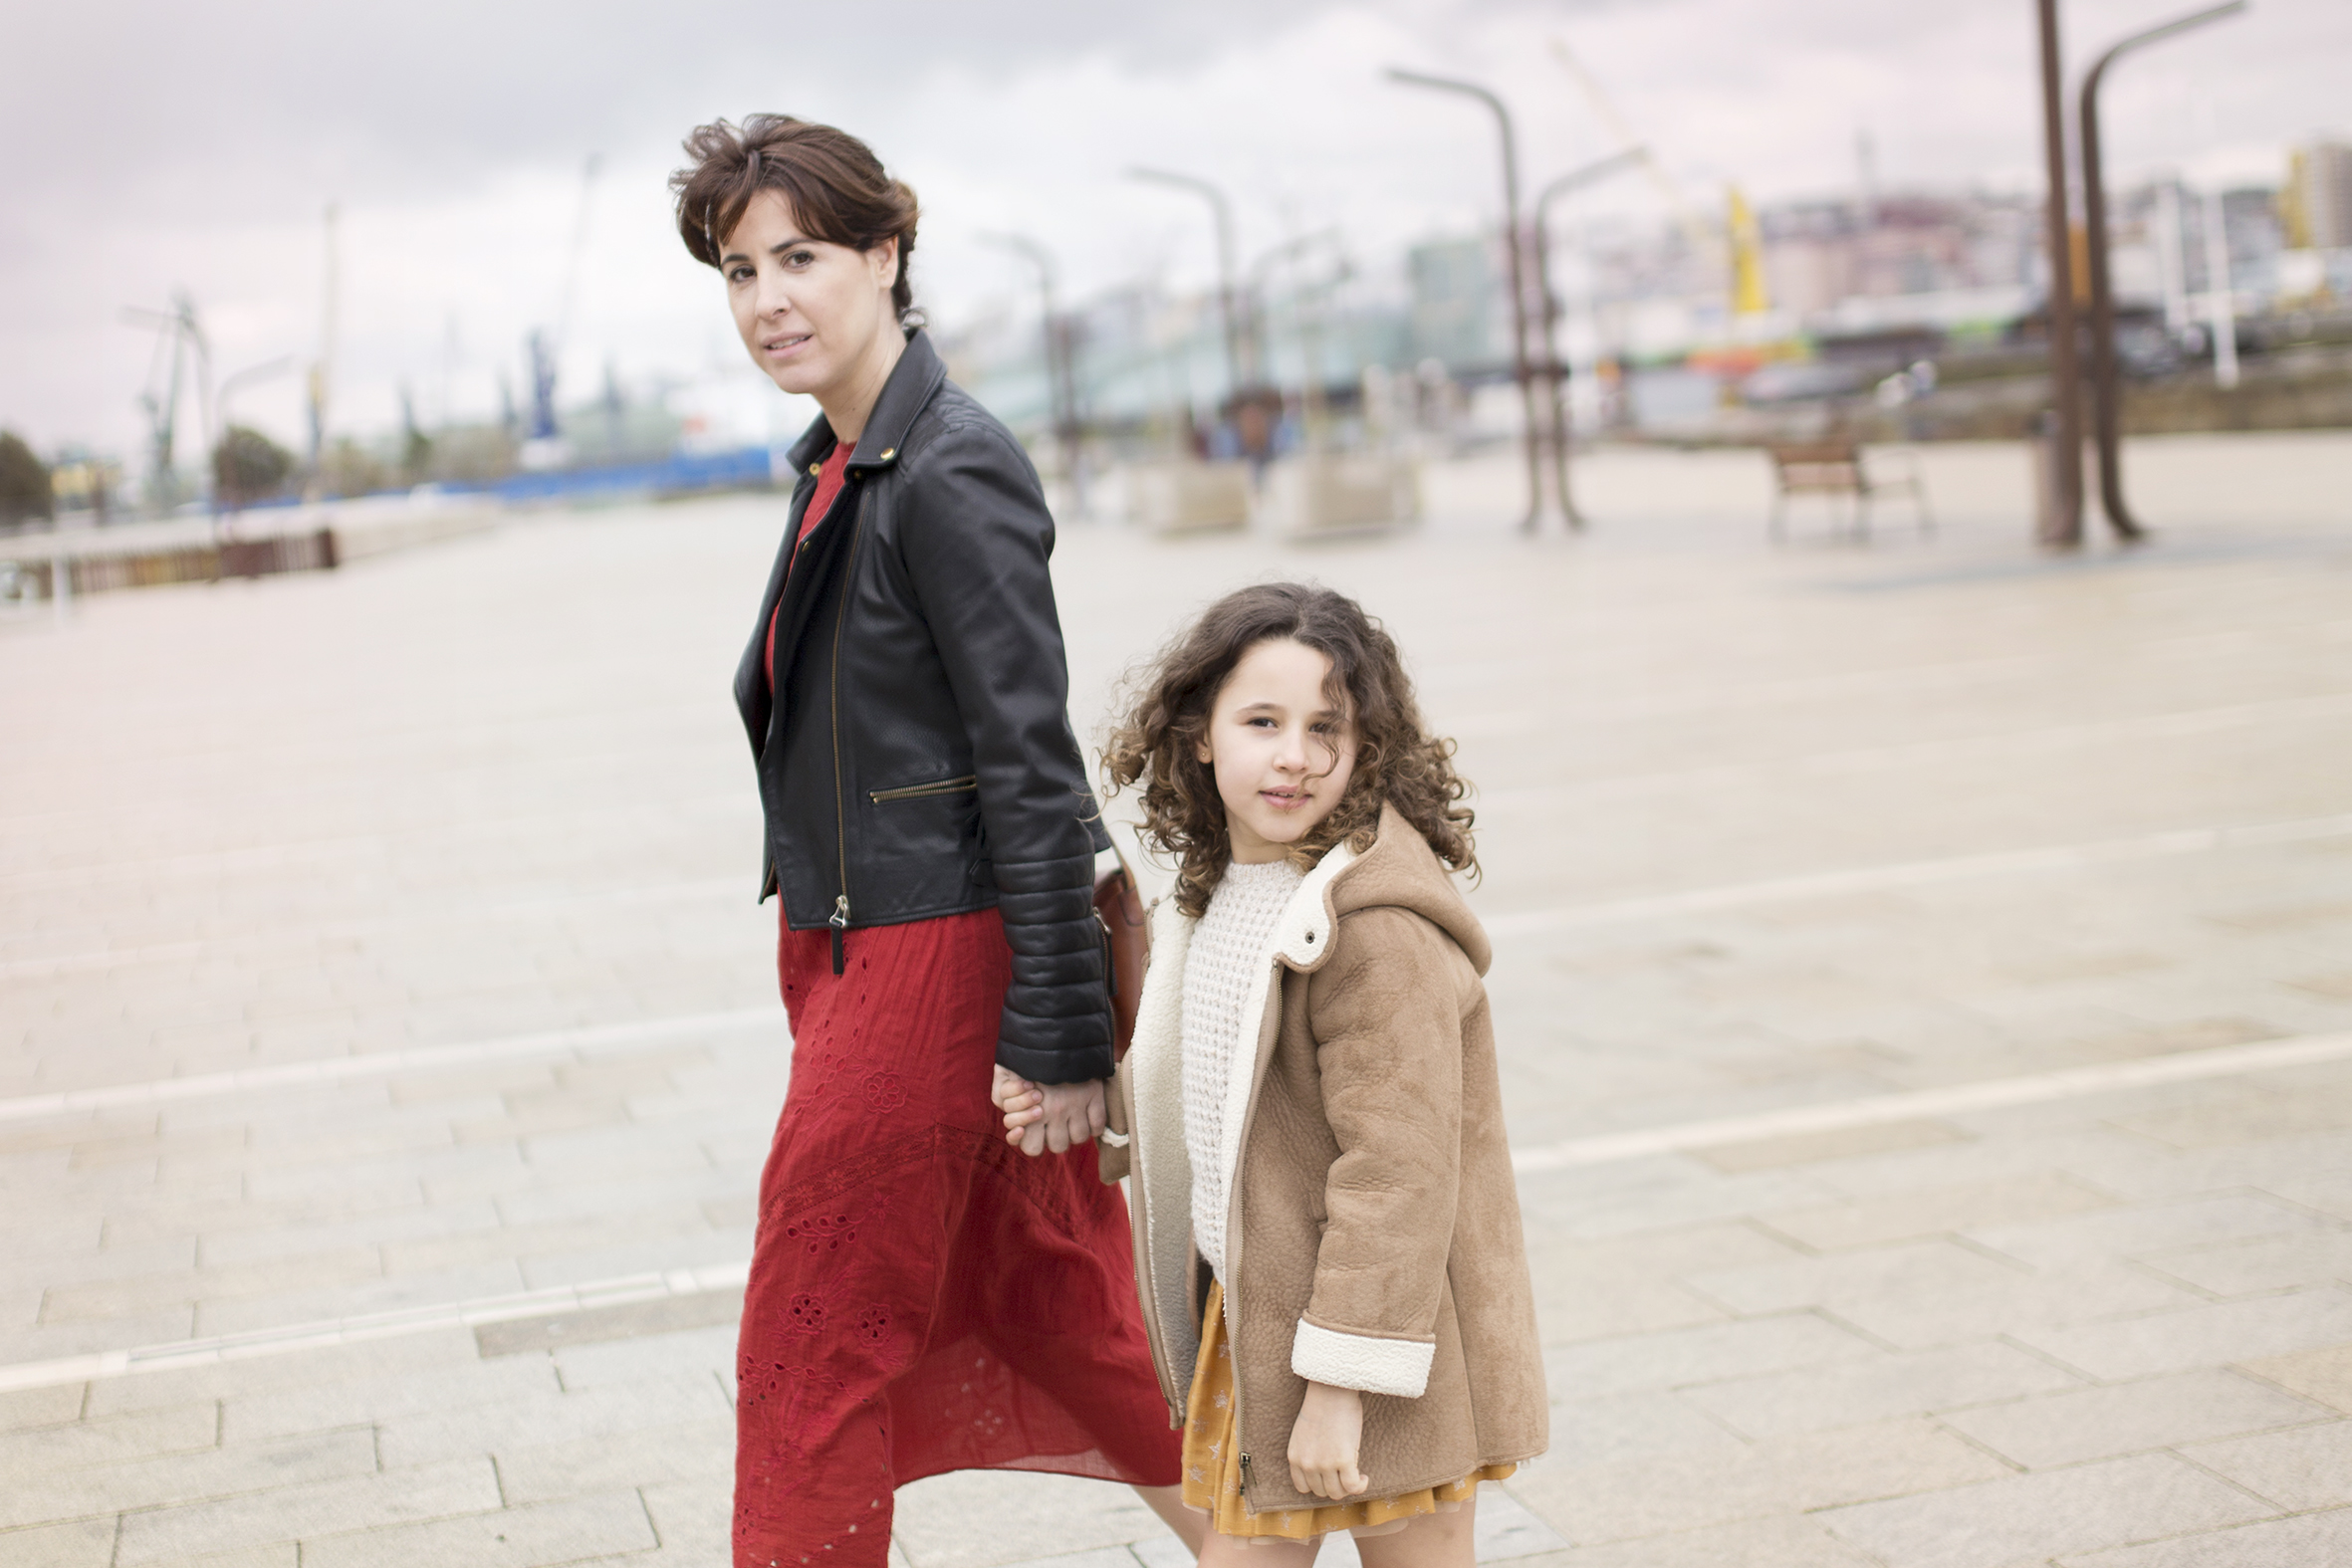 blogger-mom and daughter-Zara- descalzaporelparque-kids-fashion -mini me- streetstyle- mother-parrote-moda-coruña